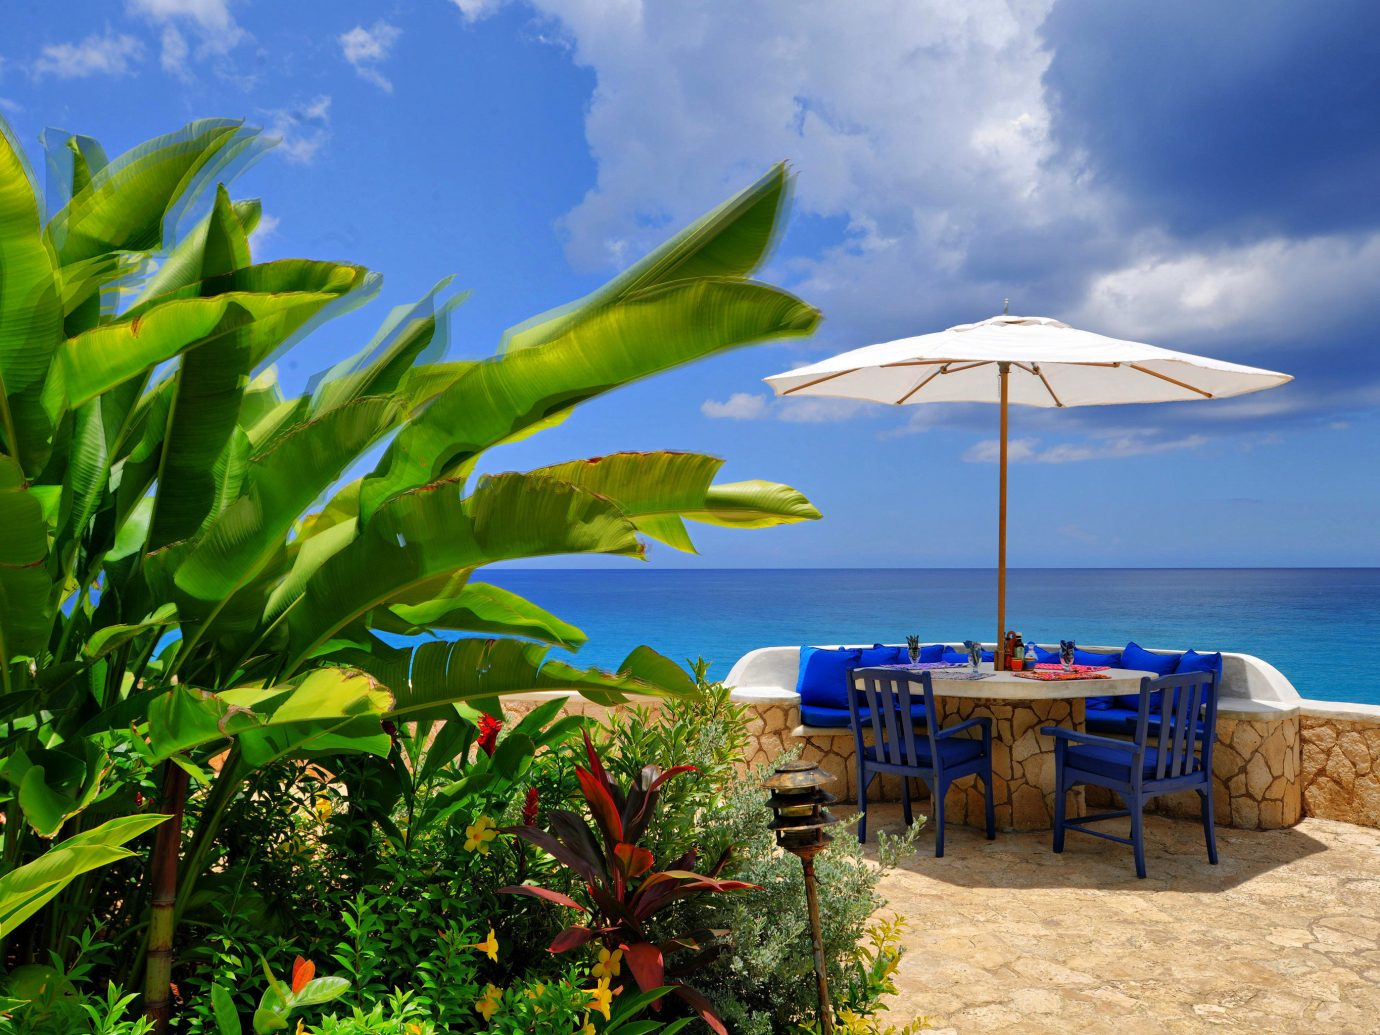 Table With A View At The Caves Hotel In Jamaica, An Adults-Only Luxury Resort